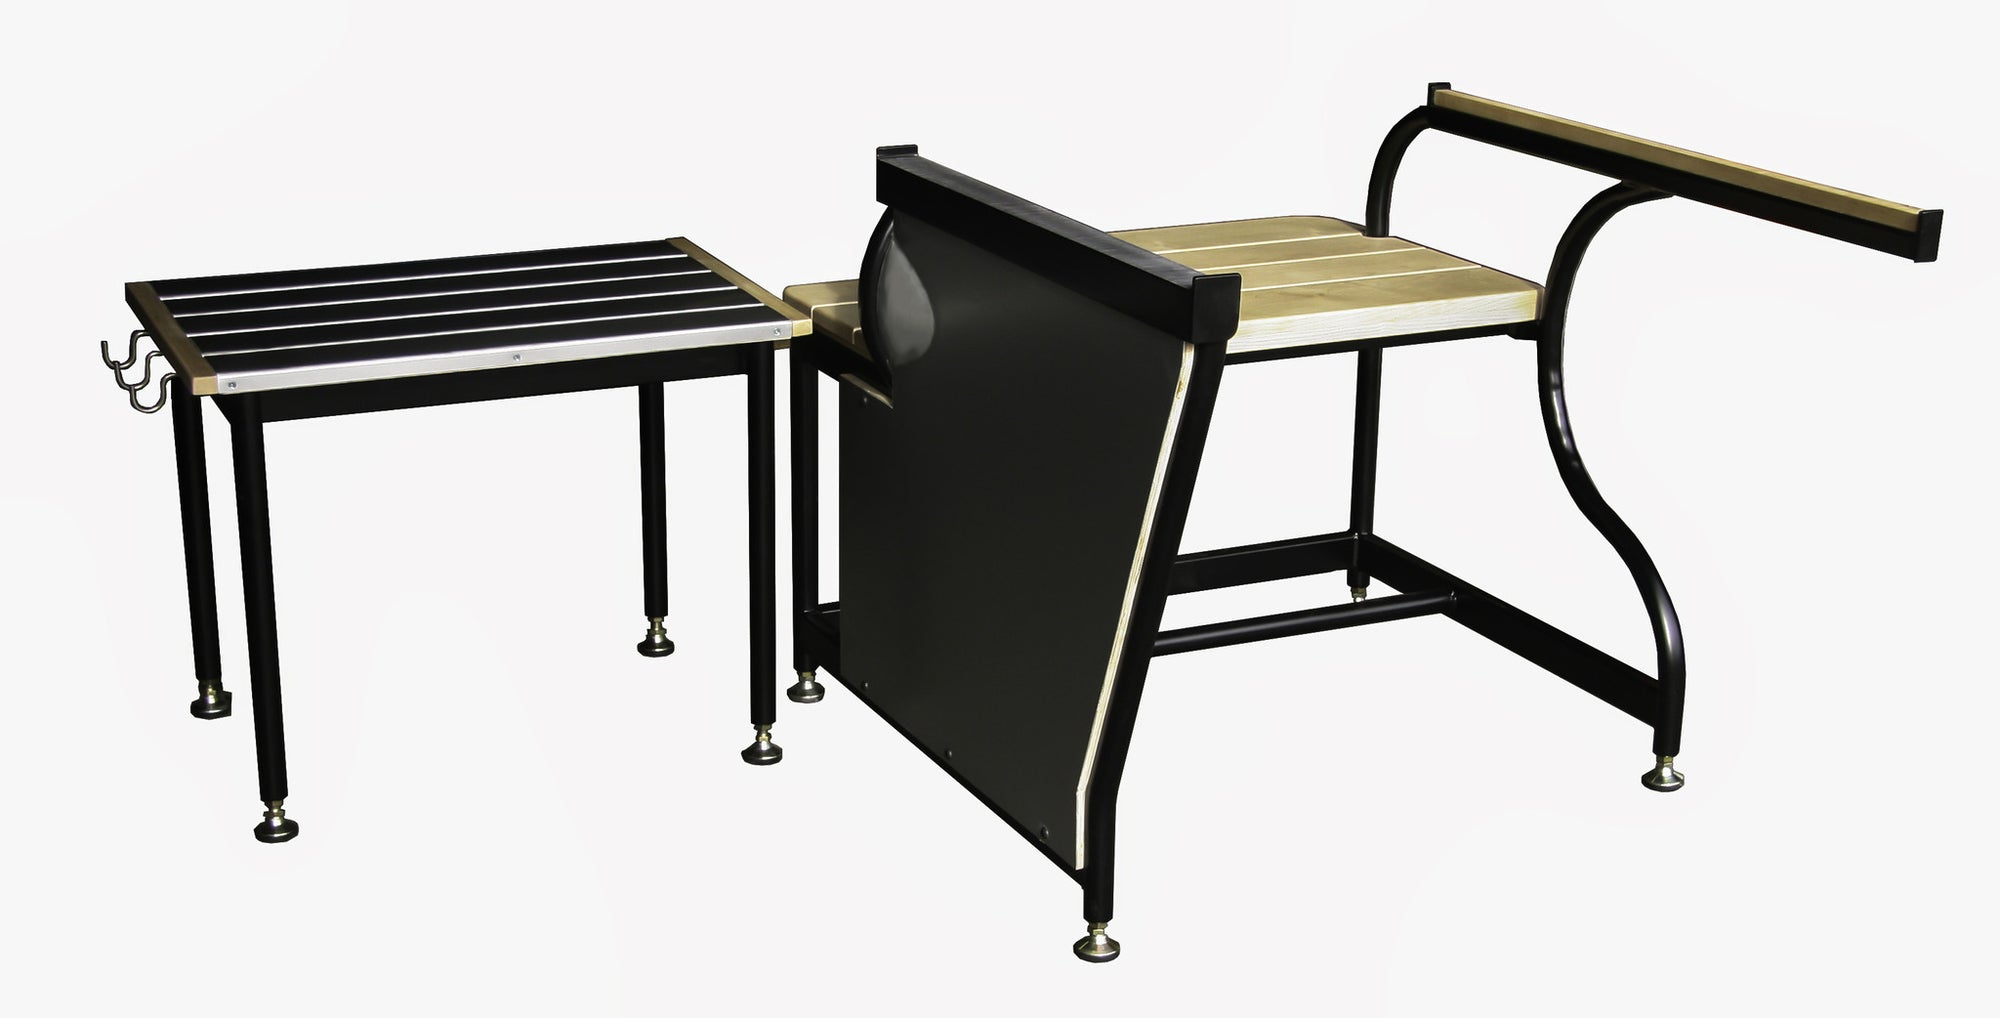 Traditional bench and separate side table for hot glass working, featuring black powder coated steel  construction, with maple accents.